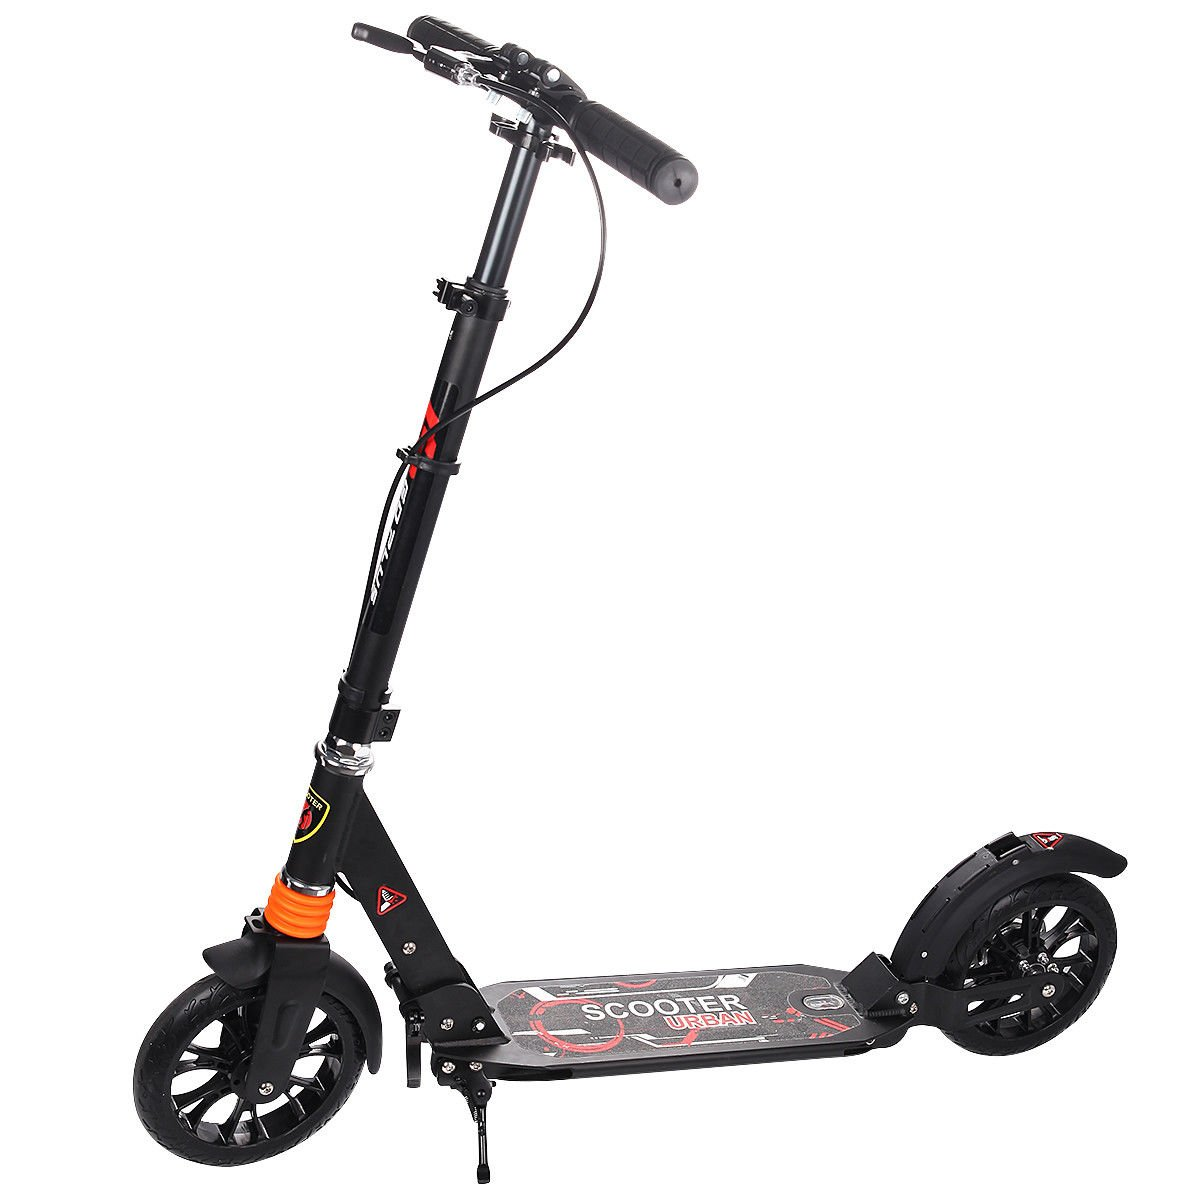 Goplus Folding Kick Scooter for Adult Teen Deluxe Aluminum 2 Big Rubber Wheels Glider Adjustable Height w/ Dual Suspension, 220lbs Capacity